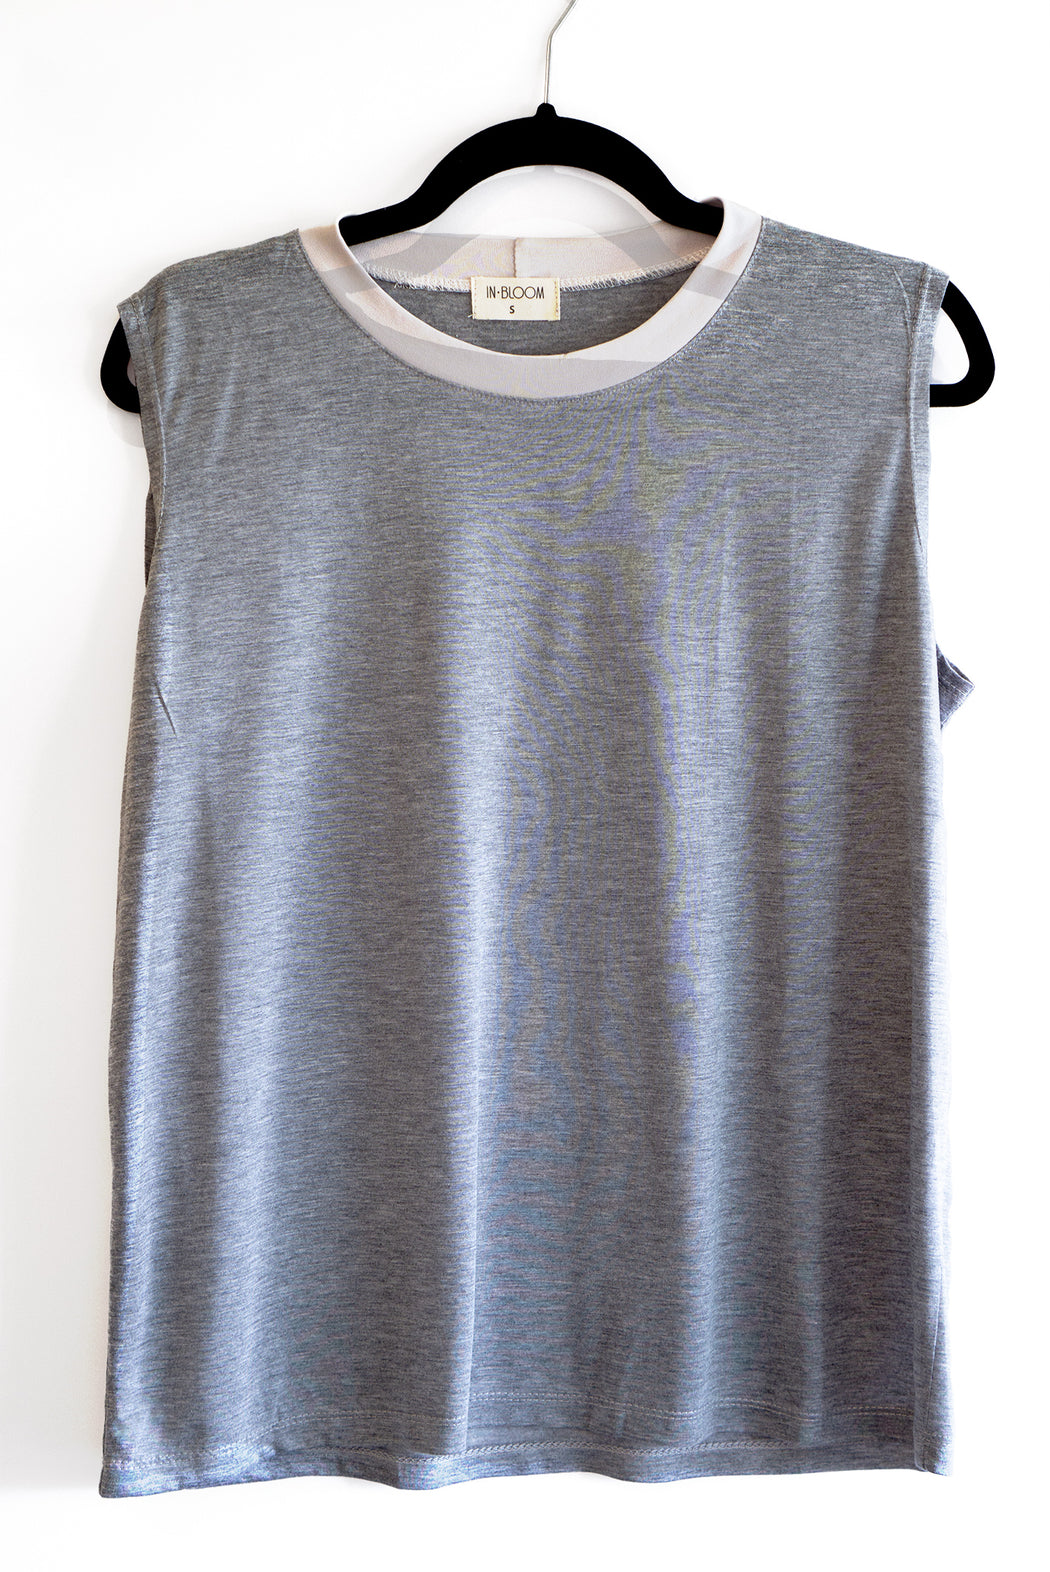 Lori gray sleeveless shirt